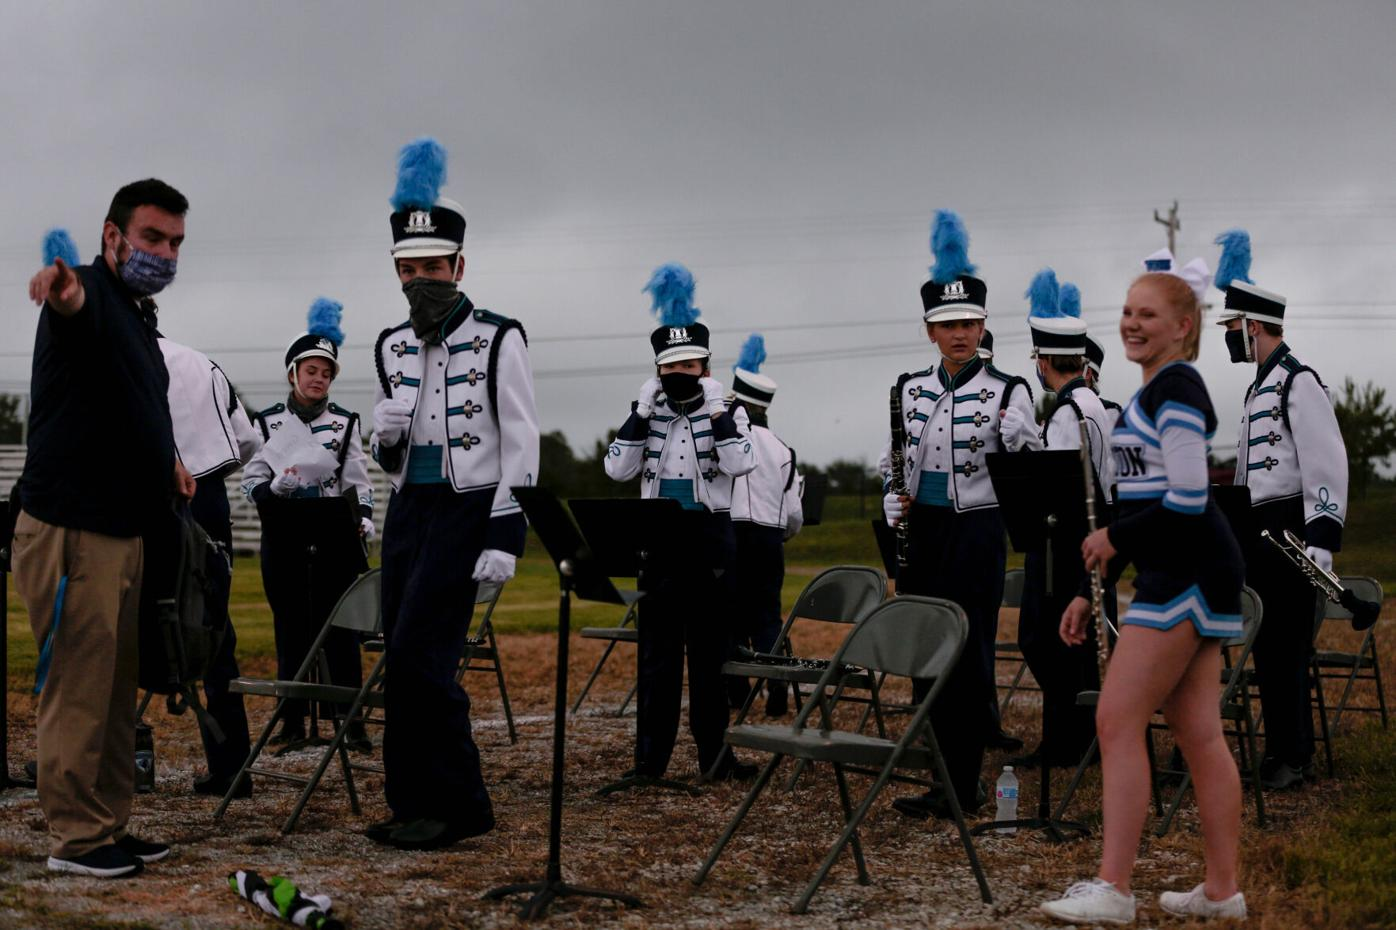 Tolton Catholic High School's marching band sets up for its pregame performance